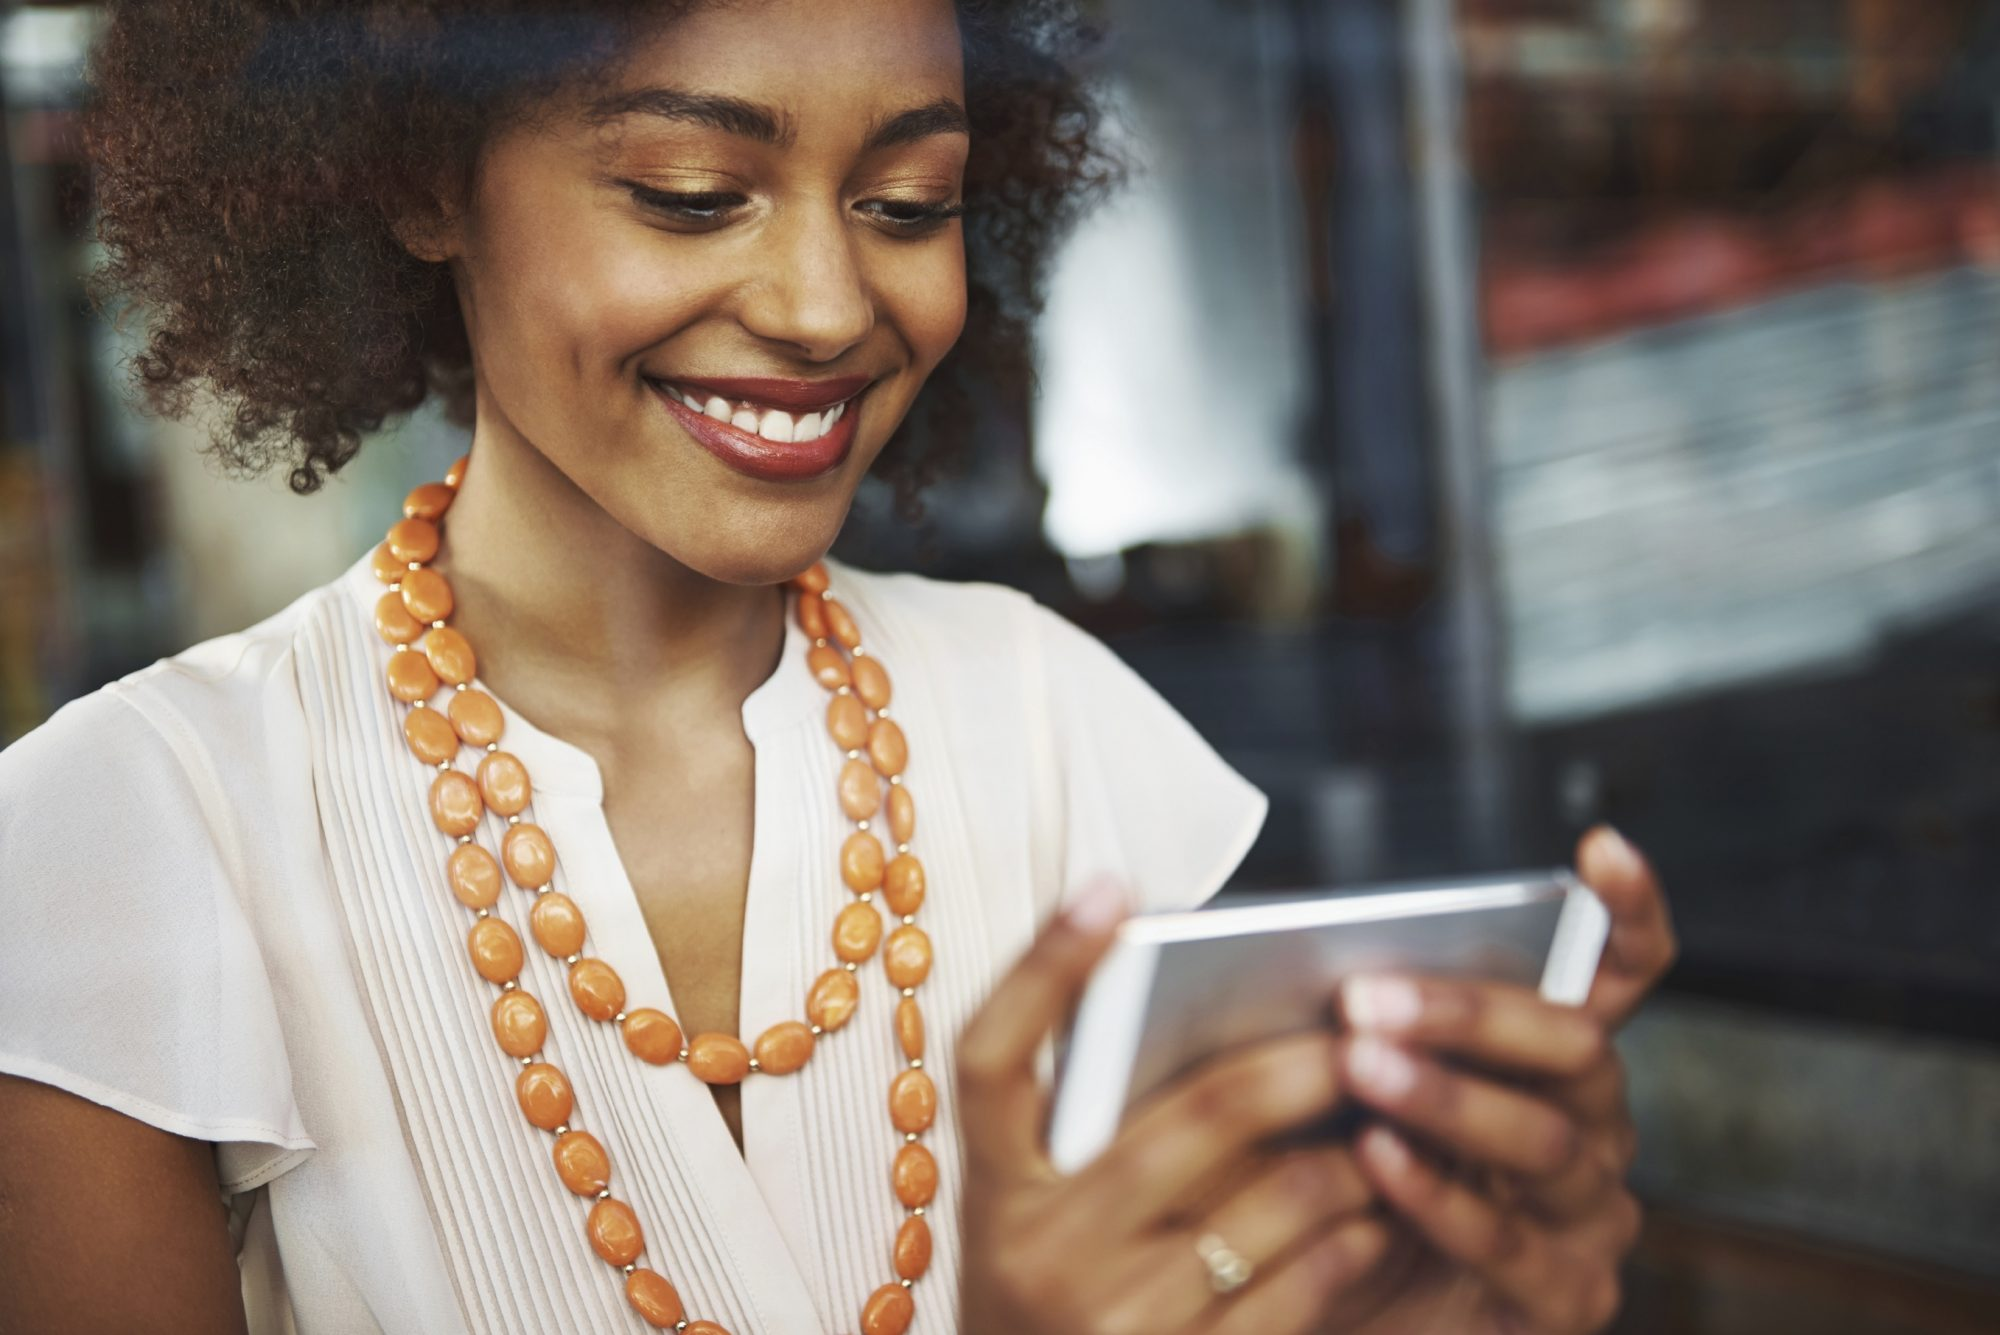 African american young professional woman in a blouse and modern style jewelry on a smartphone